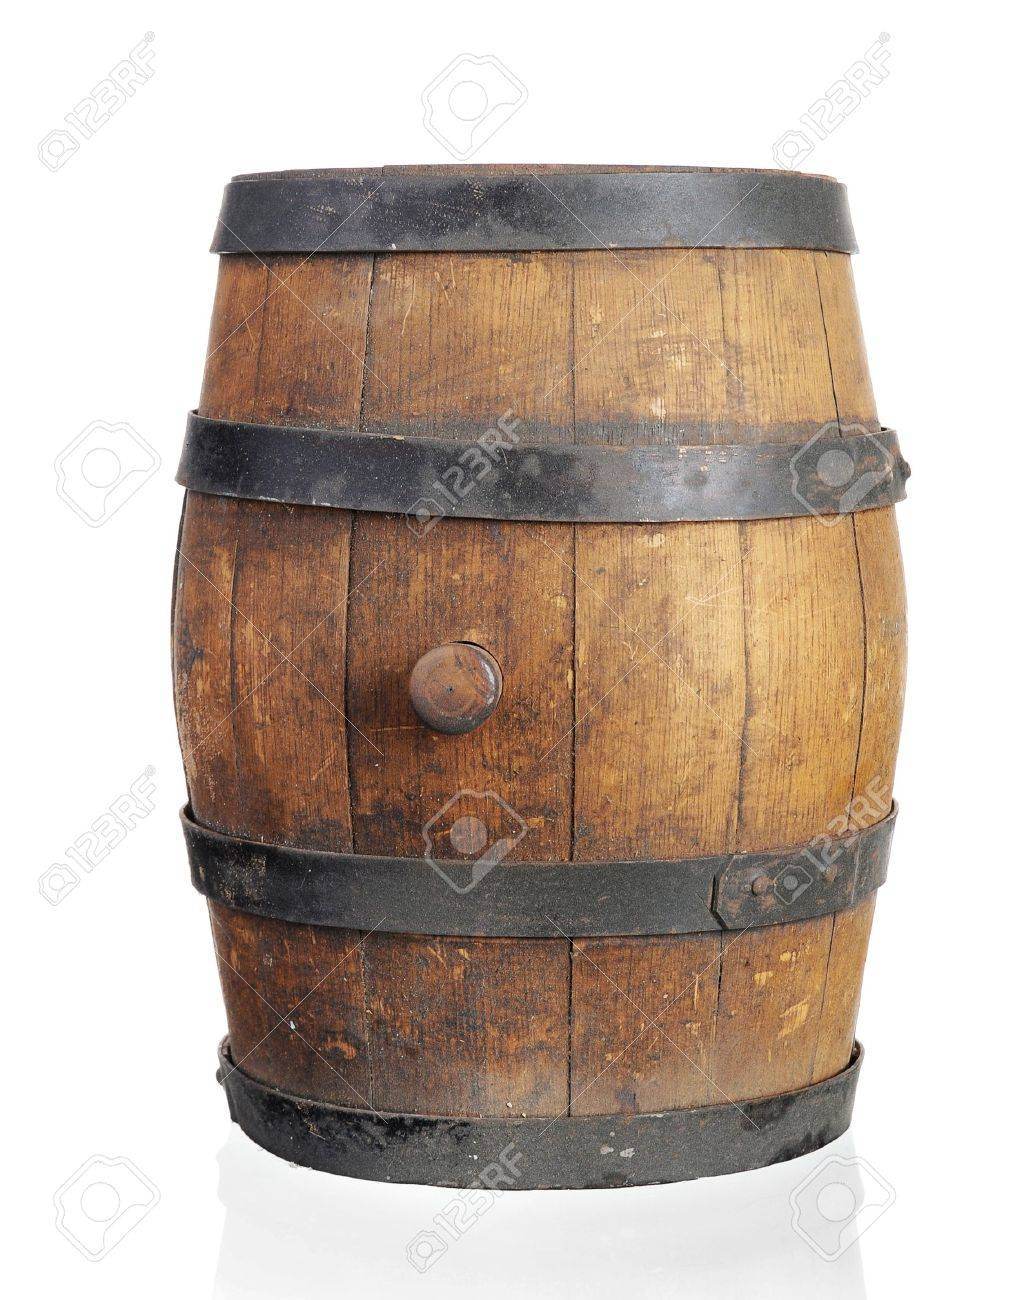 Wooden barrel with iron rings. Isolated on white background Stock Photo - 7545777